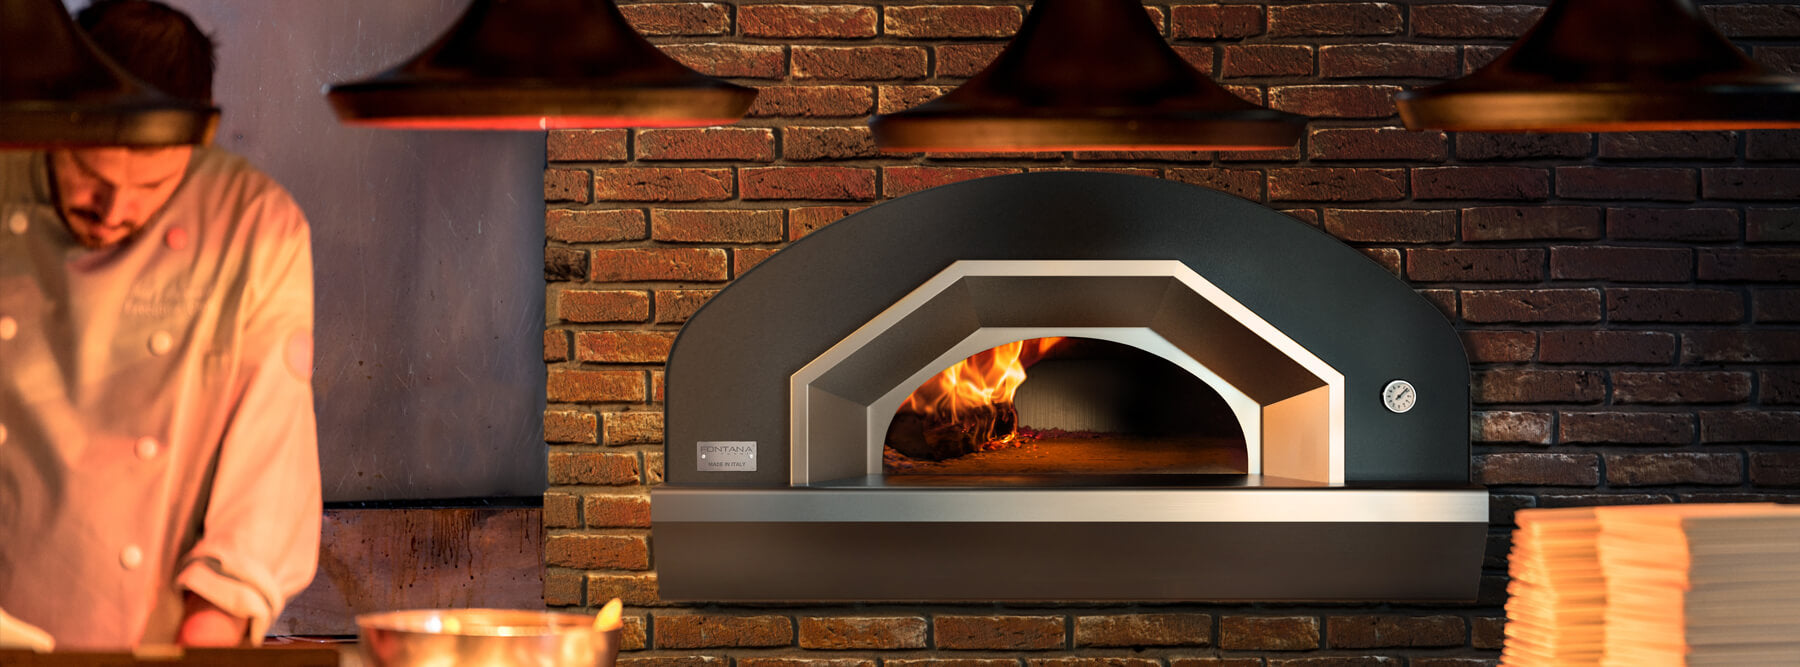 Commercial Pizza Ovens by Fontana Forni |  100% Made in Italy since 1978